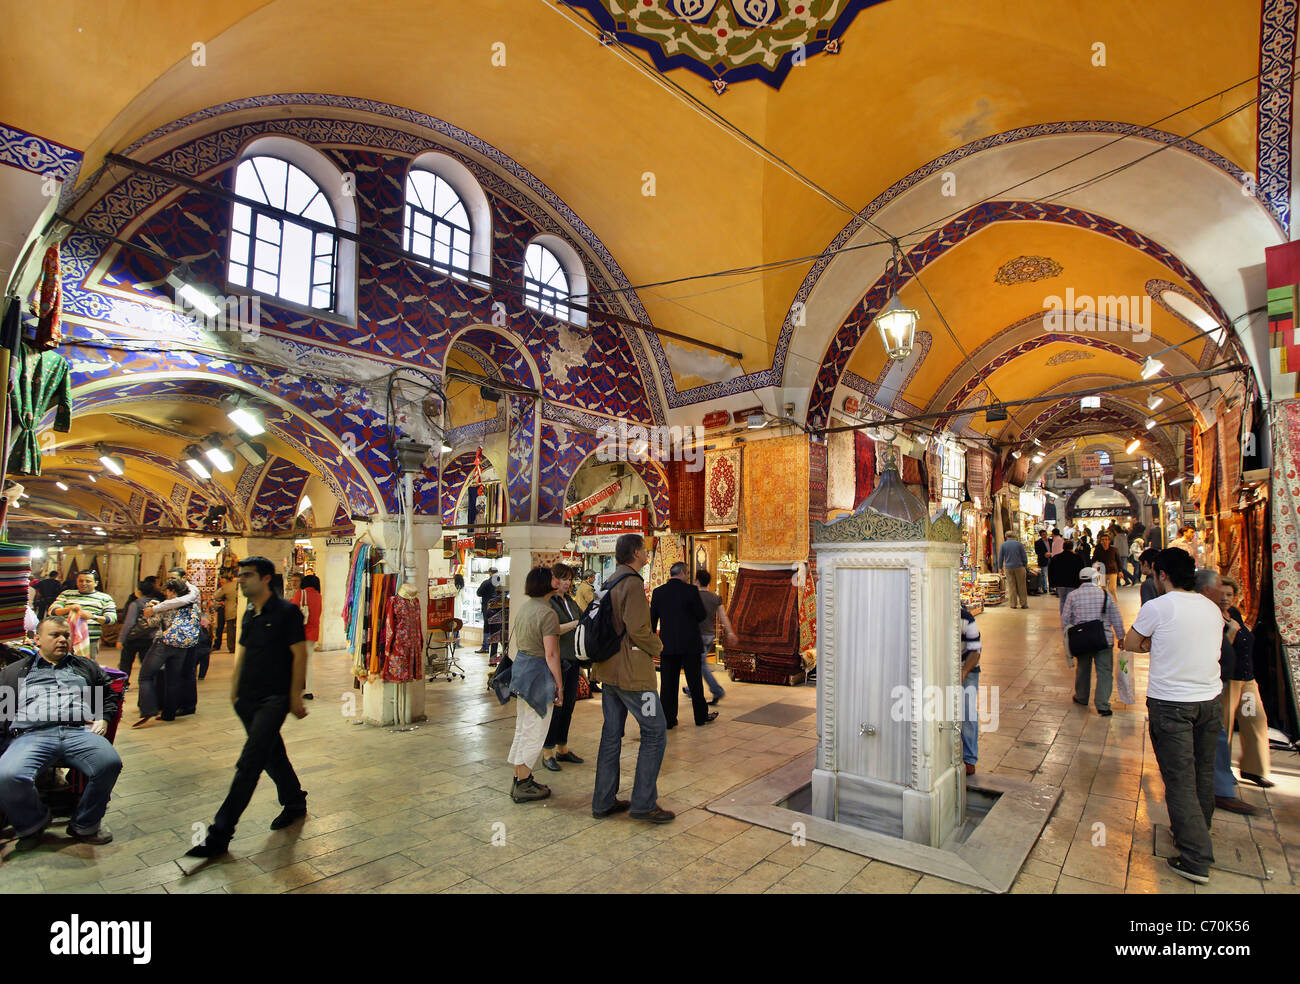 Kapali Carsi means Covered Market the Grand Bazaar of Istanbul